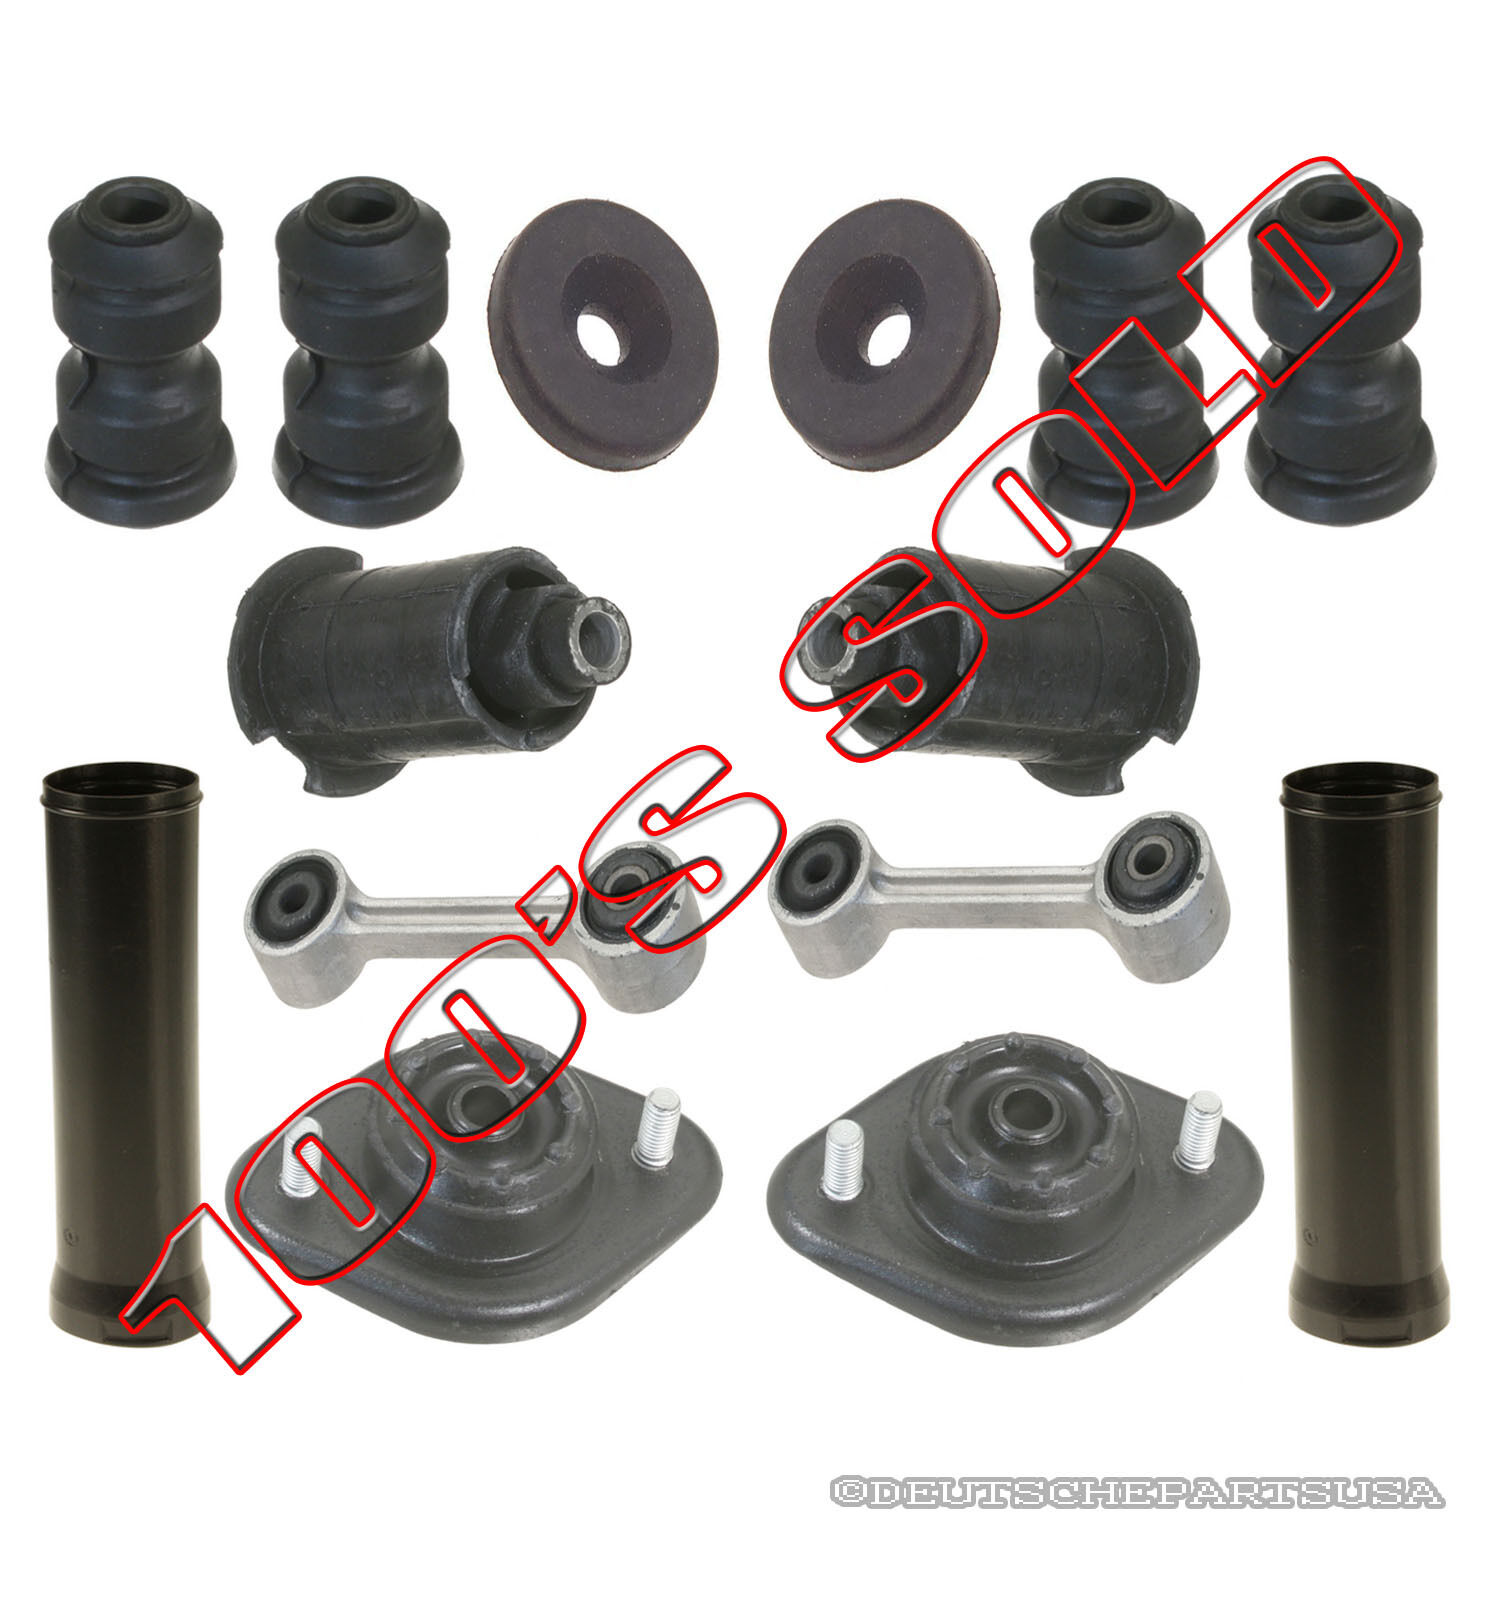 You Can Add The Stabilizer Bar For An Additional 79: BMW E30 REAR TRAILING CONTROL ARM SUBFRAME SHOCK MOUNT